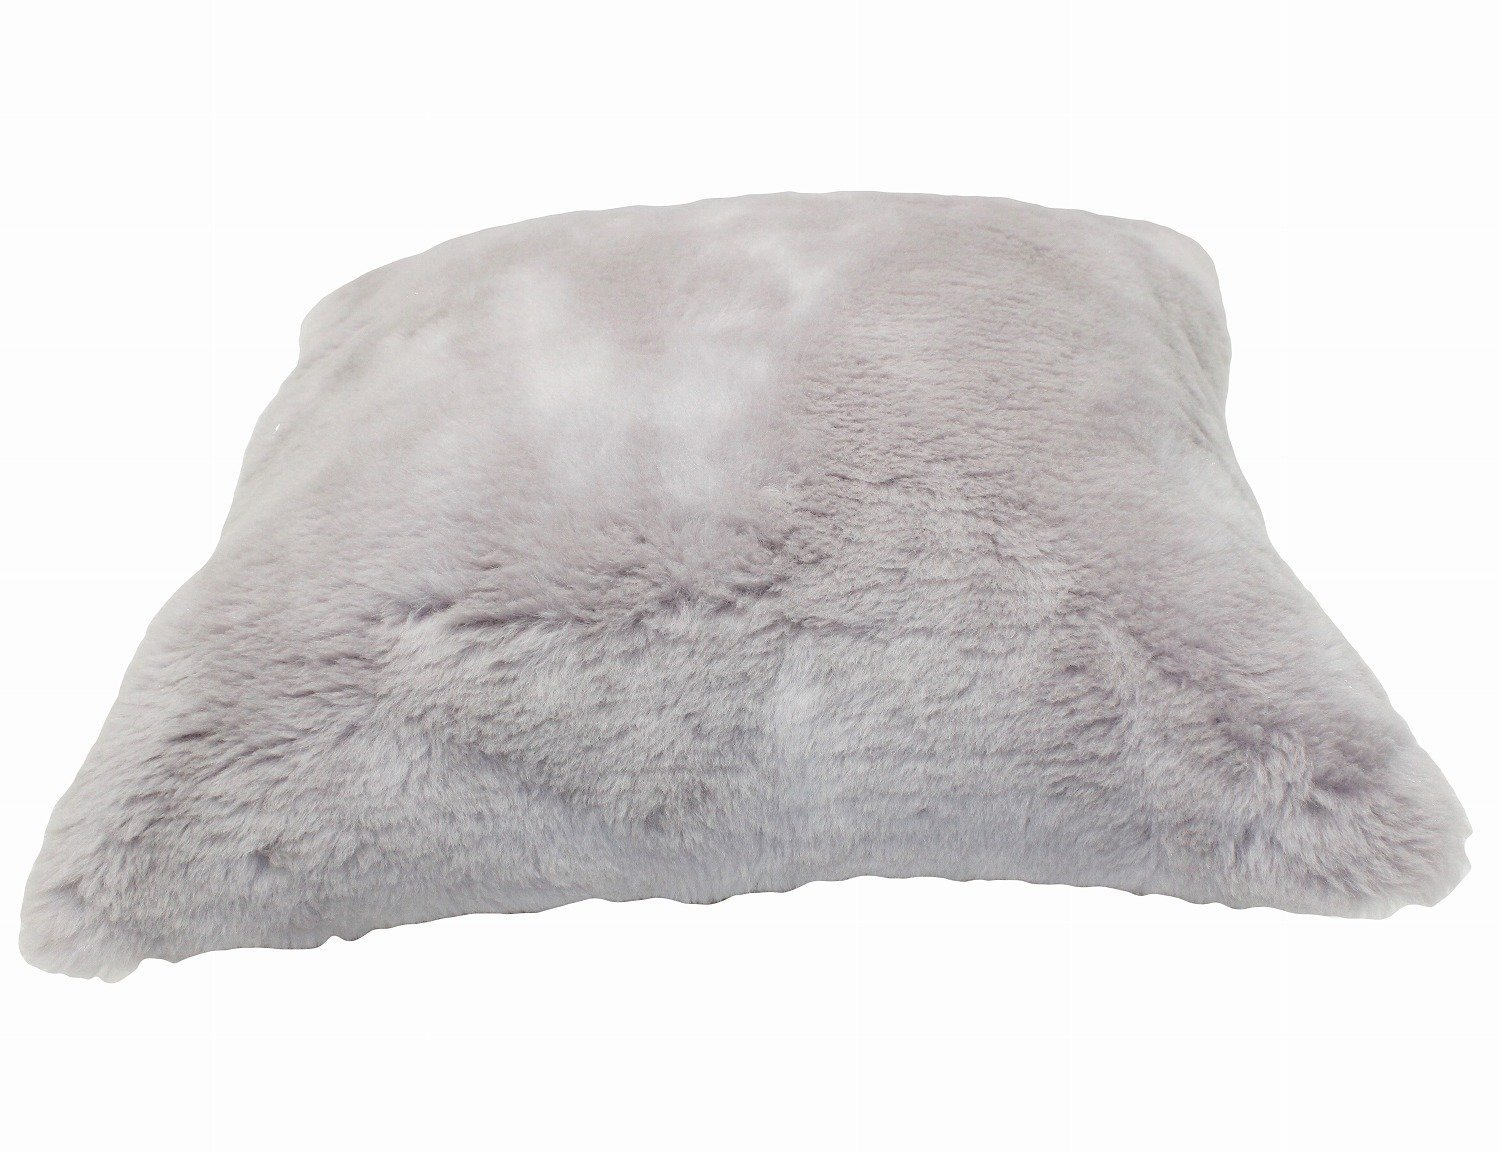 Furfurmouton Sheepskin Wool Throw Pillow Cover 20x20 Case Only Beige Camelbell WB45